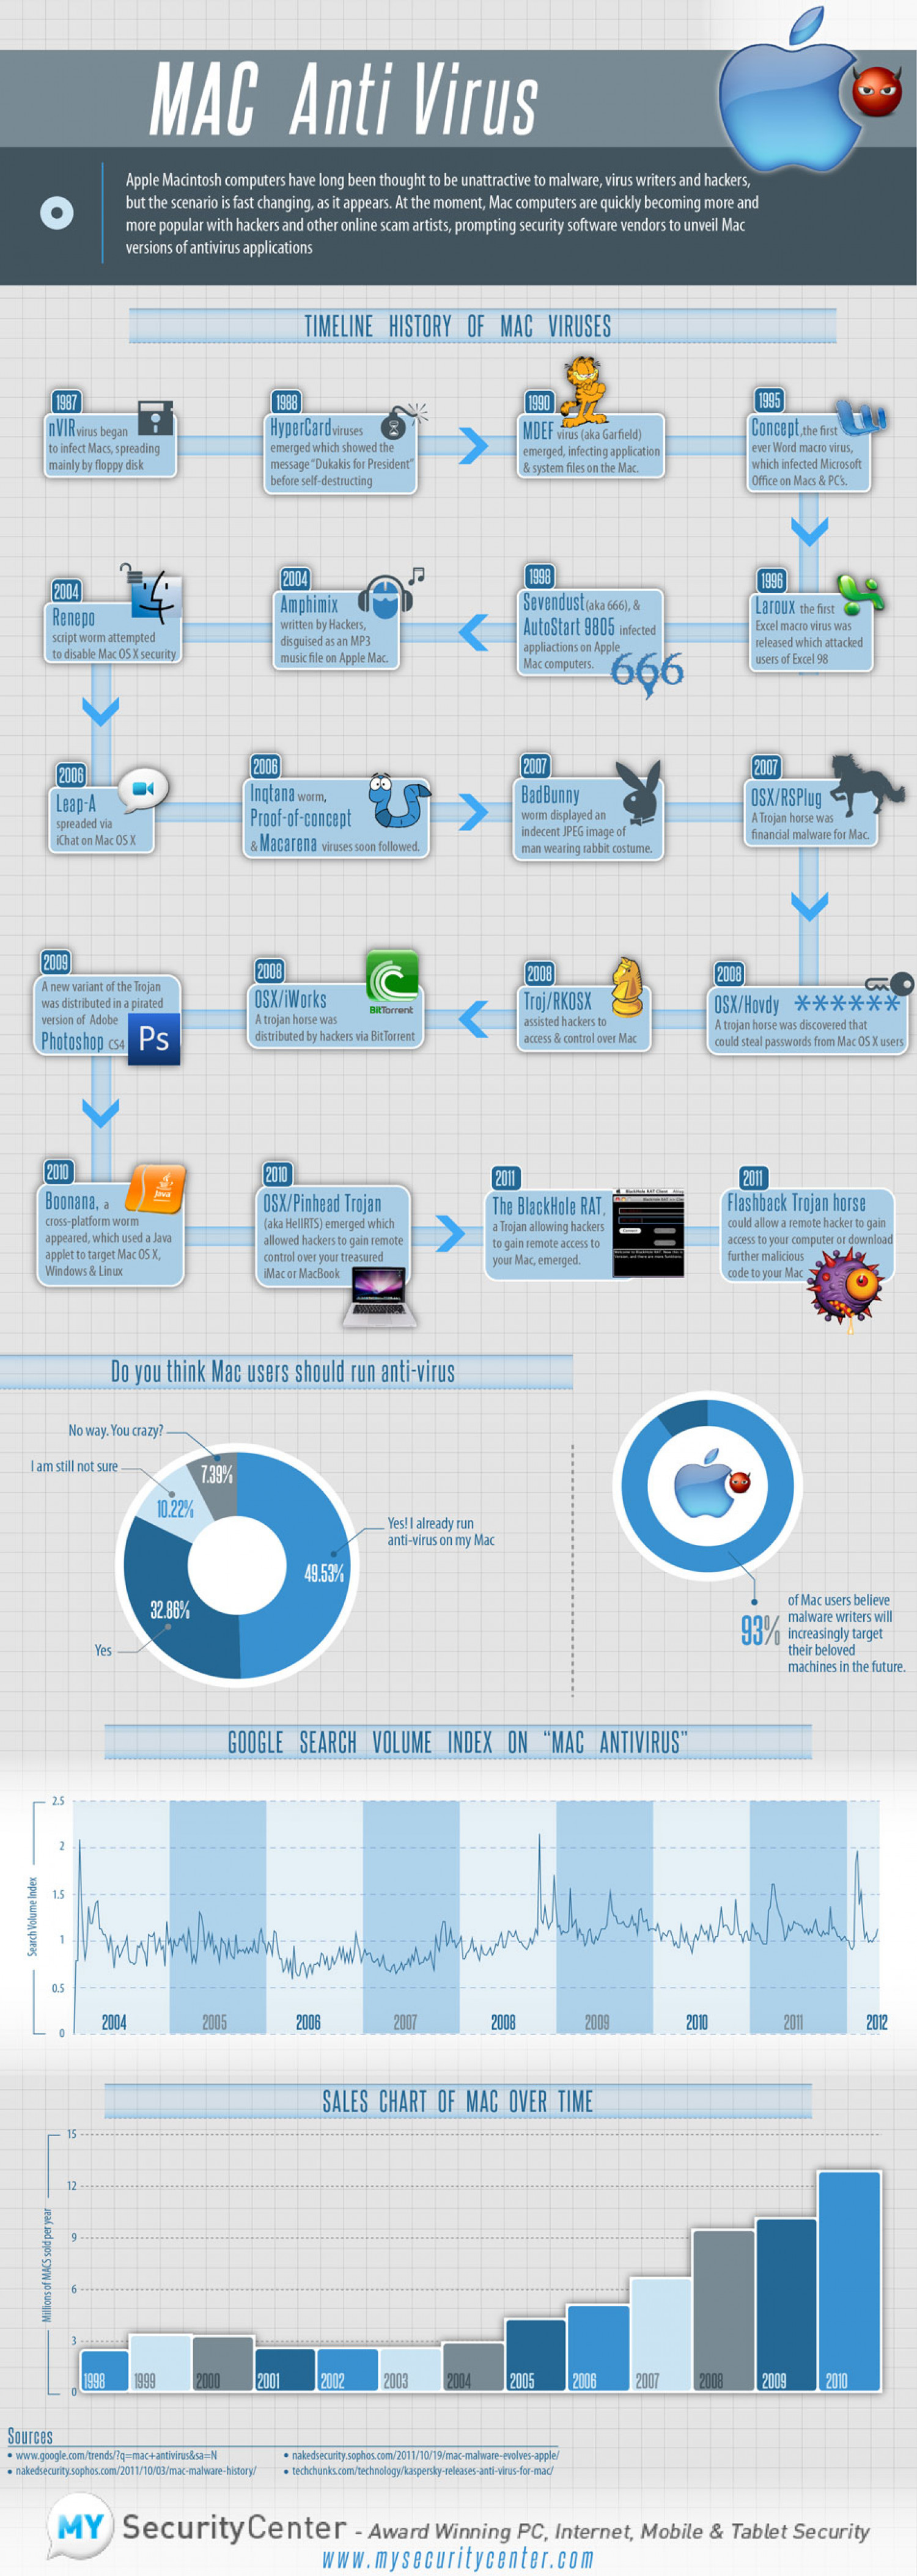 Mac Virus Revolution Infographic